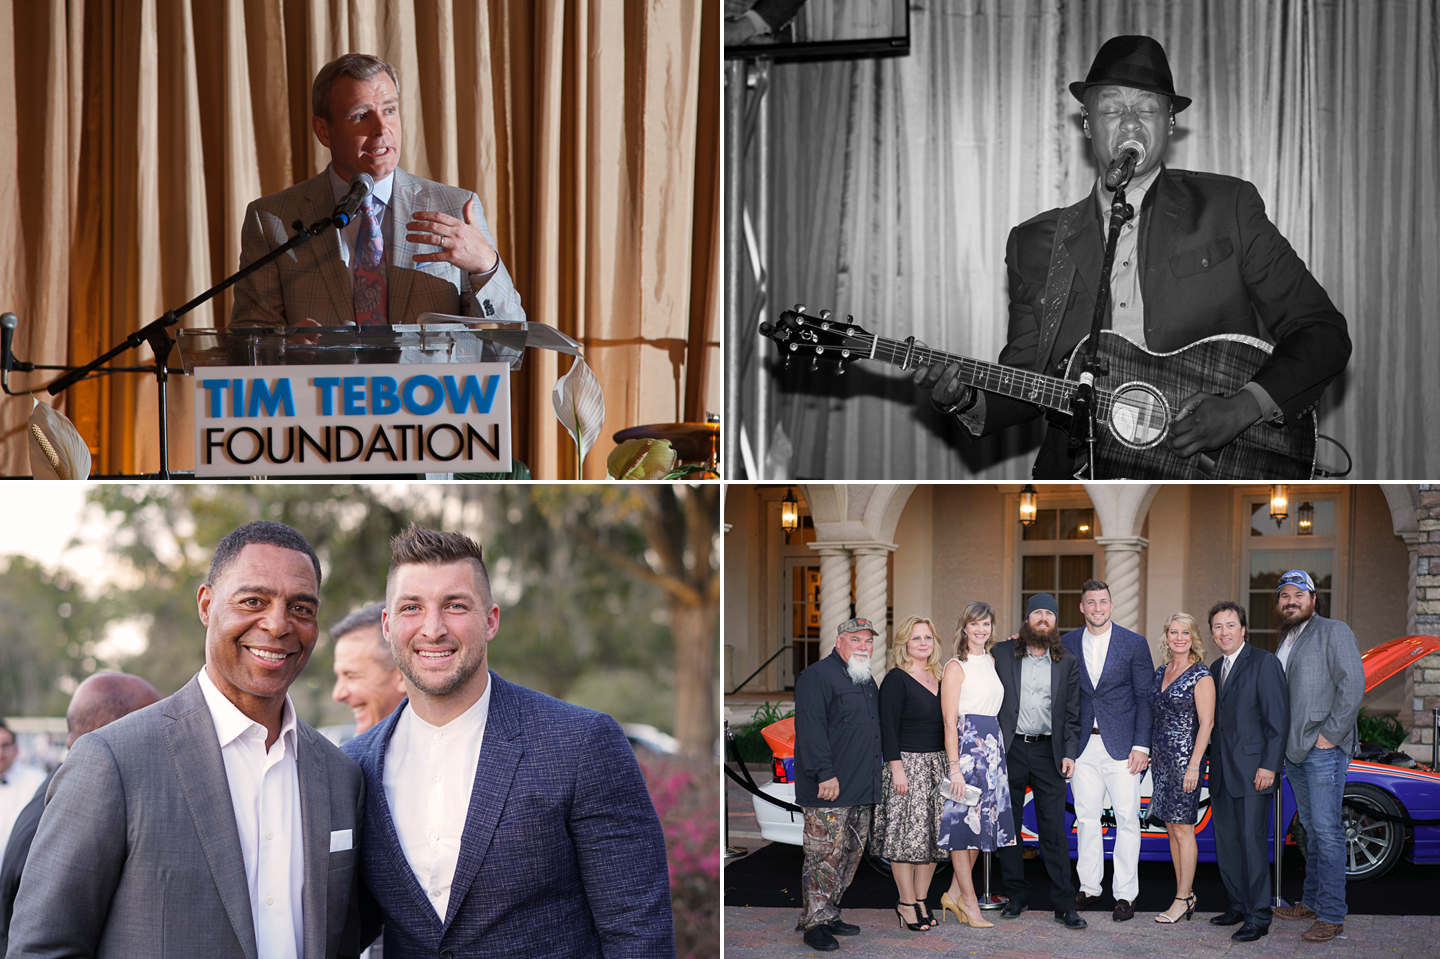 Tim Tebow Foundation Celebrity Gala